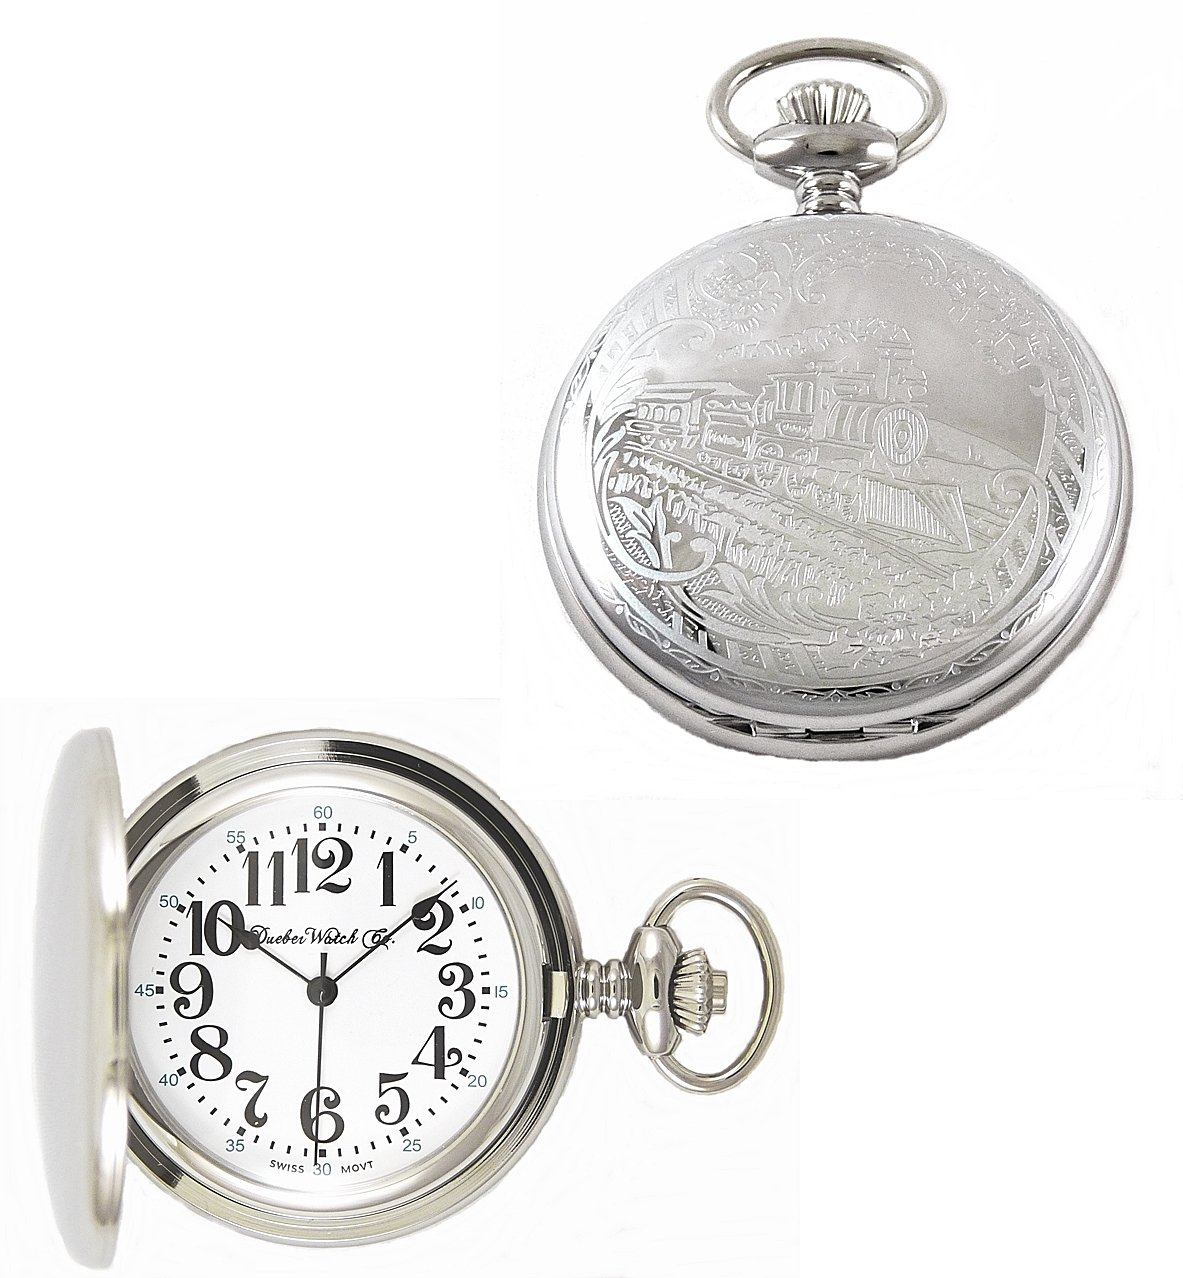 Dueber Watch Co Swiss Steel Hunting Case Pocket Watch with Locomotive Railroad Design